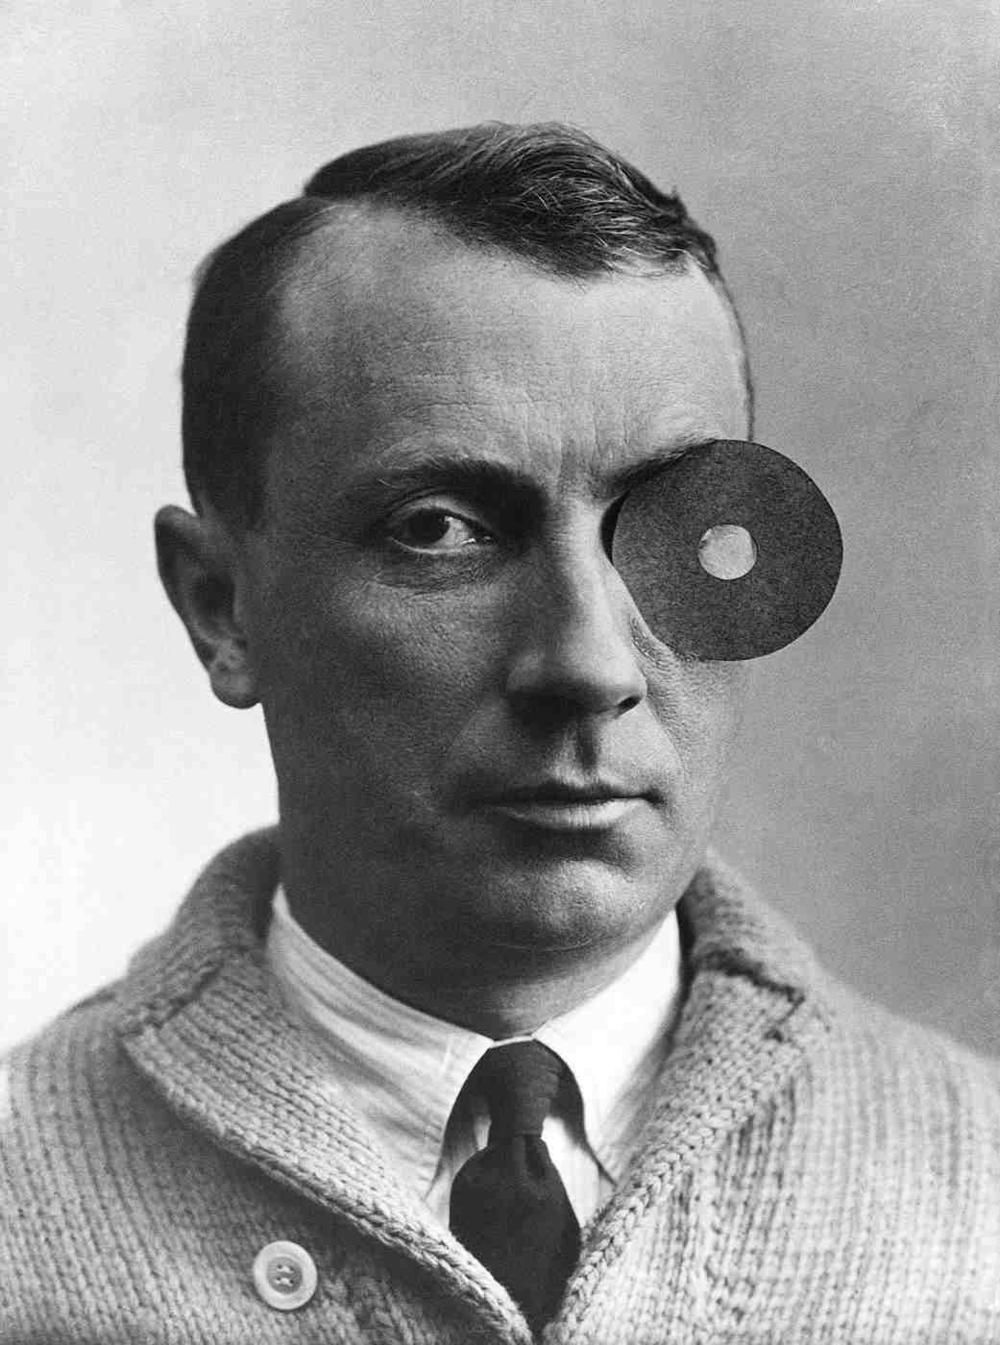 Jean Arp pHOTOGRAPHER: UNKNOWN